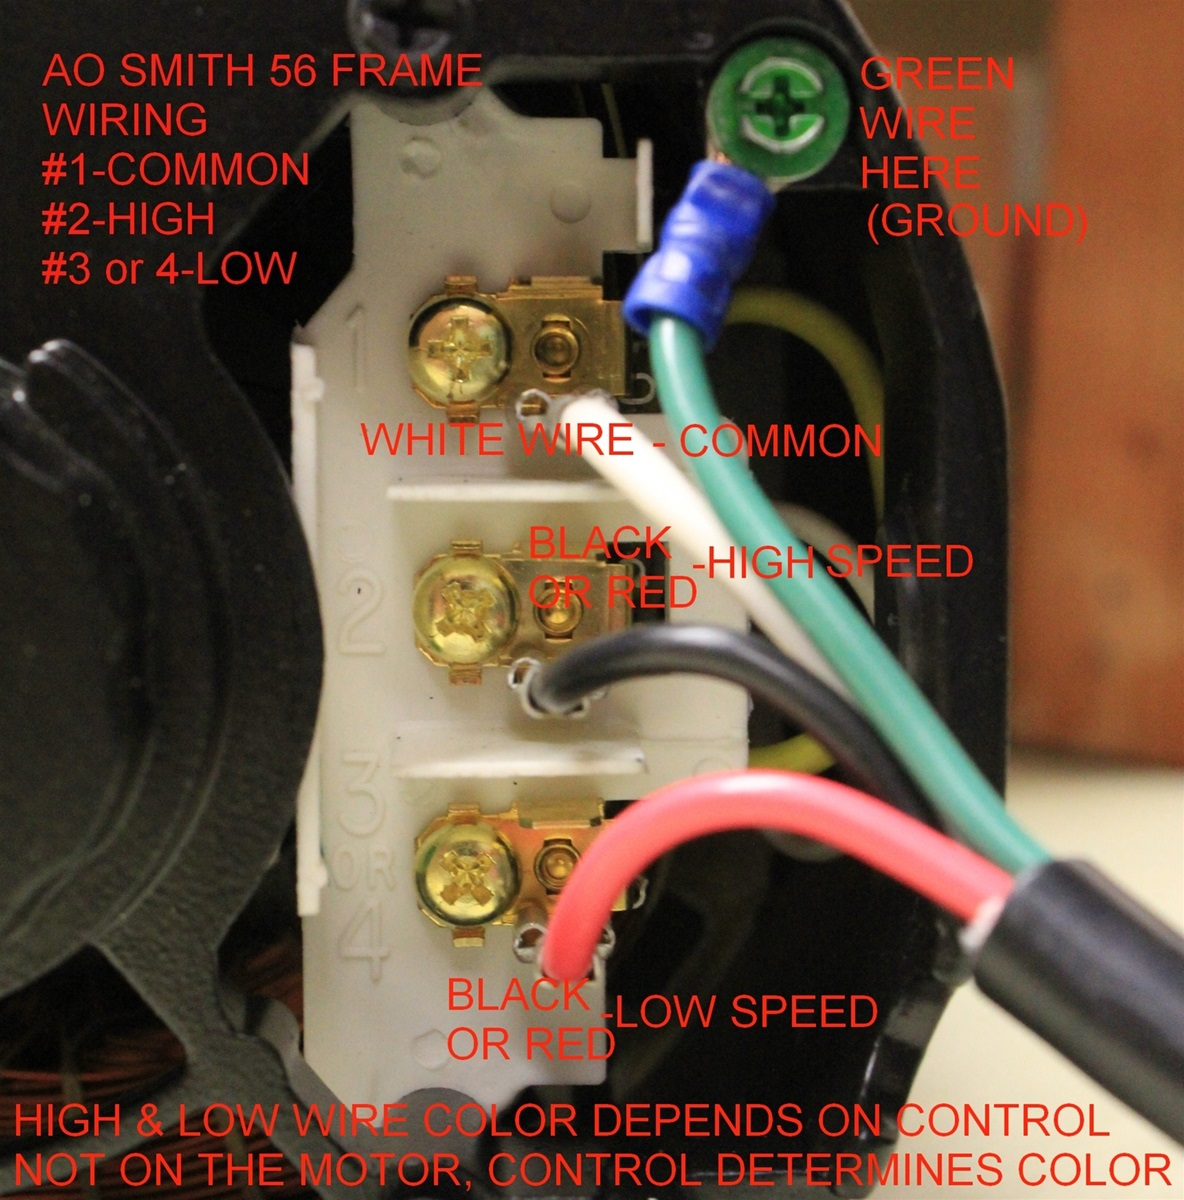 wiring ct diagram controller 301a9 cm200 wiring diagram honda c wiring diagram v honda wiring two sd motor wiring diagram two tnc scooters ct 302s9 product specification